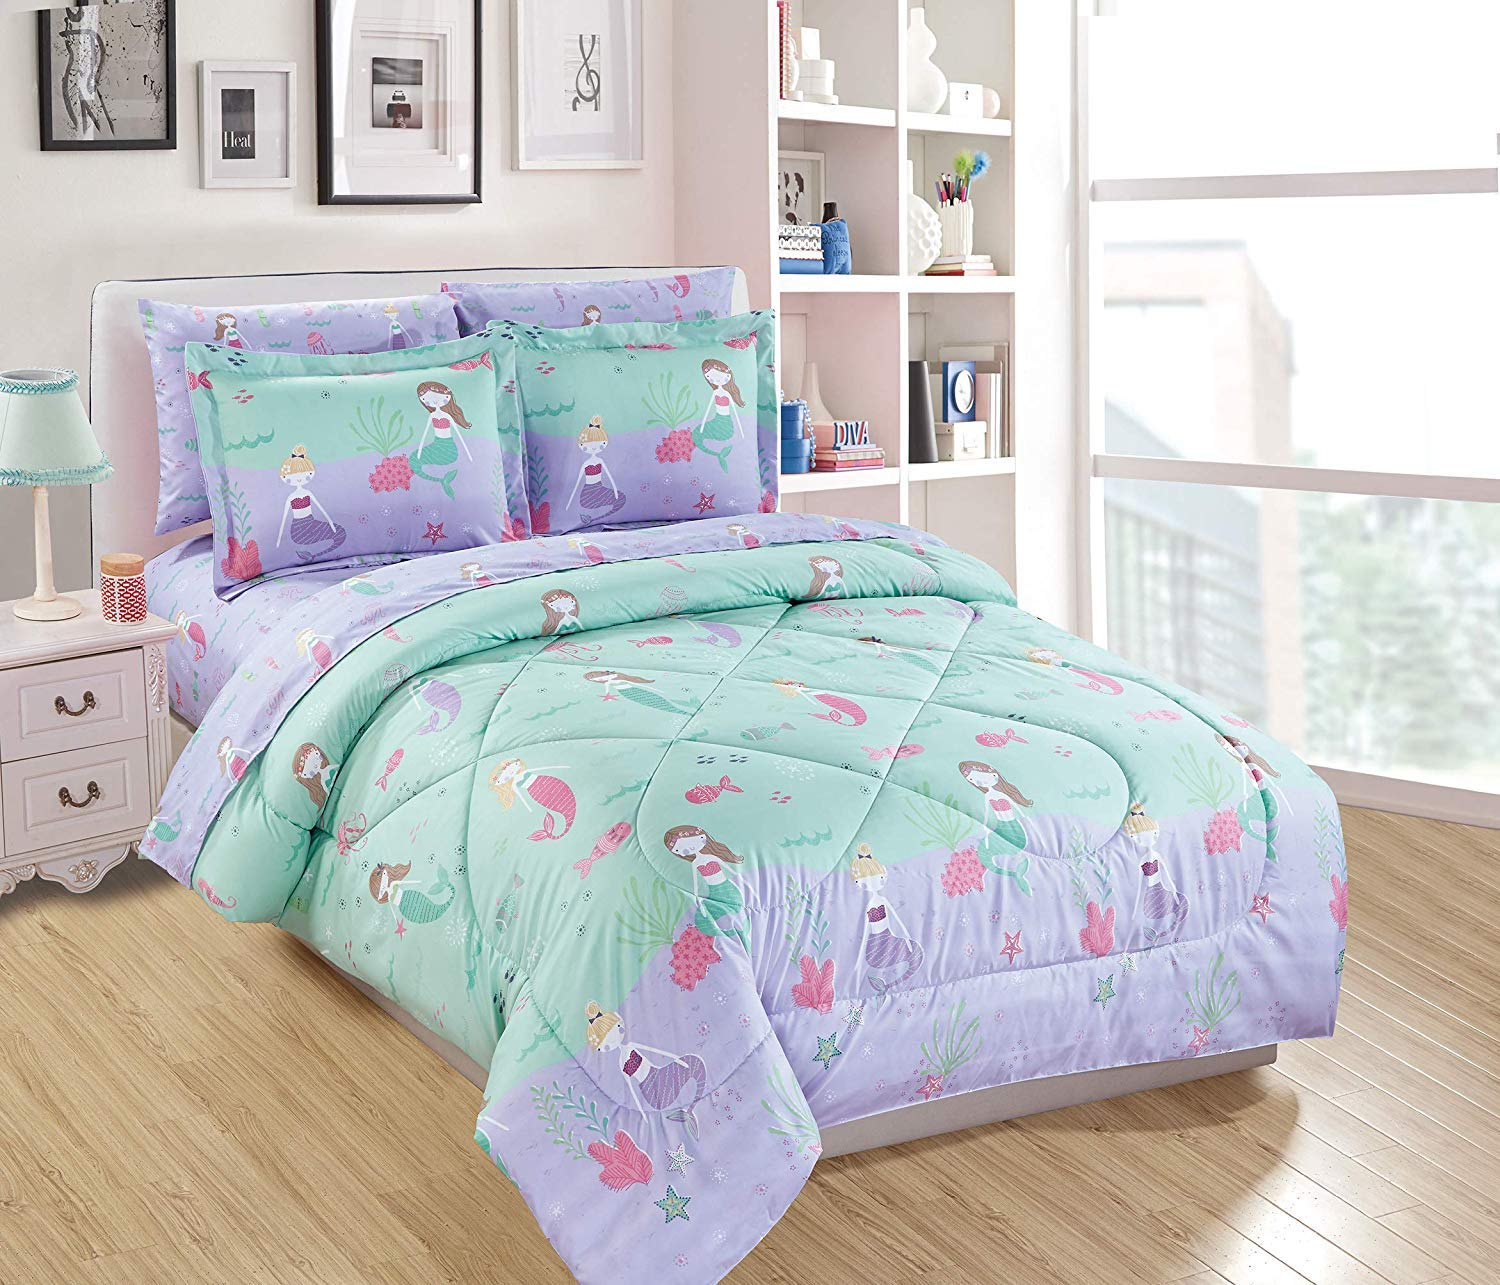 Luxury Home Collection 7 Piece Kids Full Comforter Set Mermaid Jelly Fish Sea Horse Sea Purple Green Pink #Mermaid (Full Comforter)